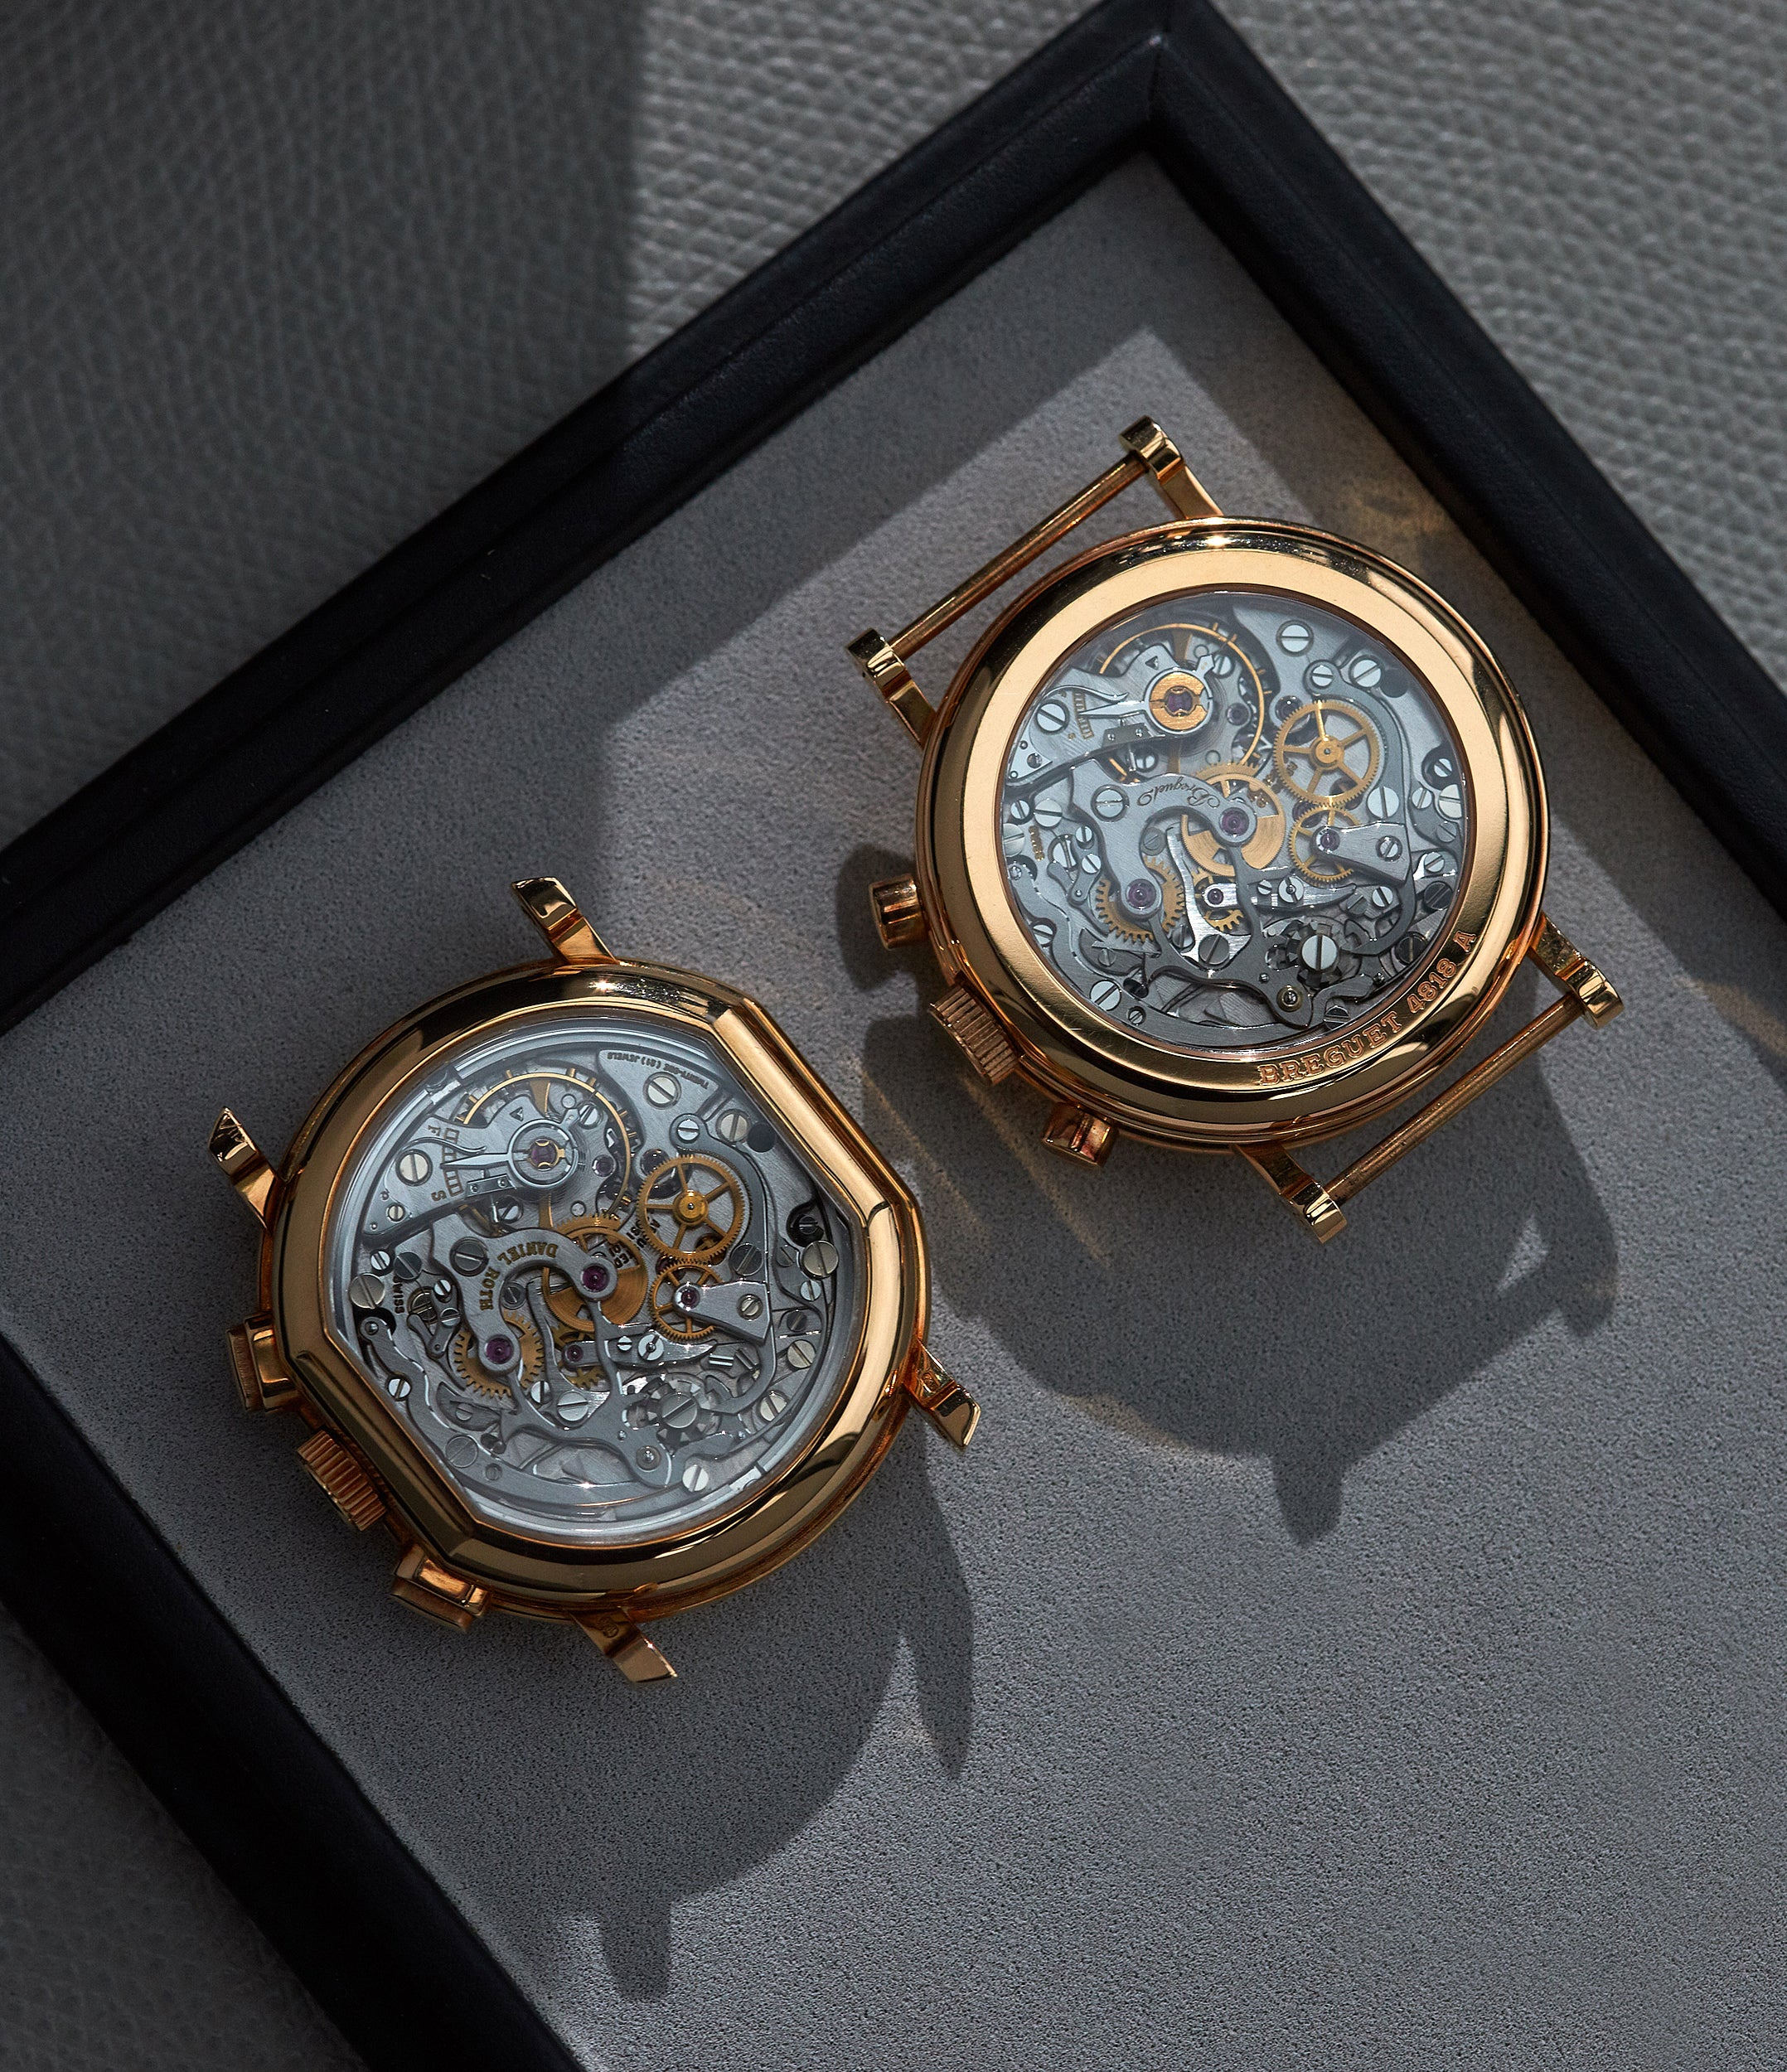 Daniel Roth and Breguet chronograph movements In-house or ébauche, and does it even matter anymore? For A Collected Man London